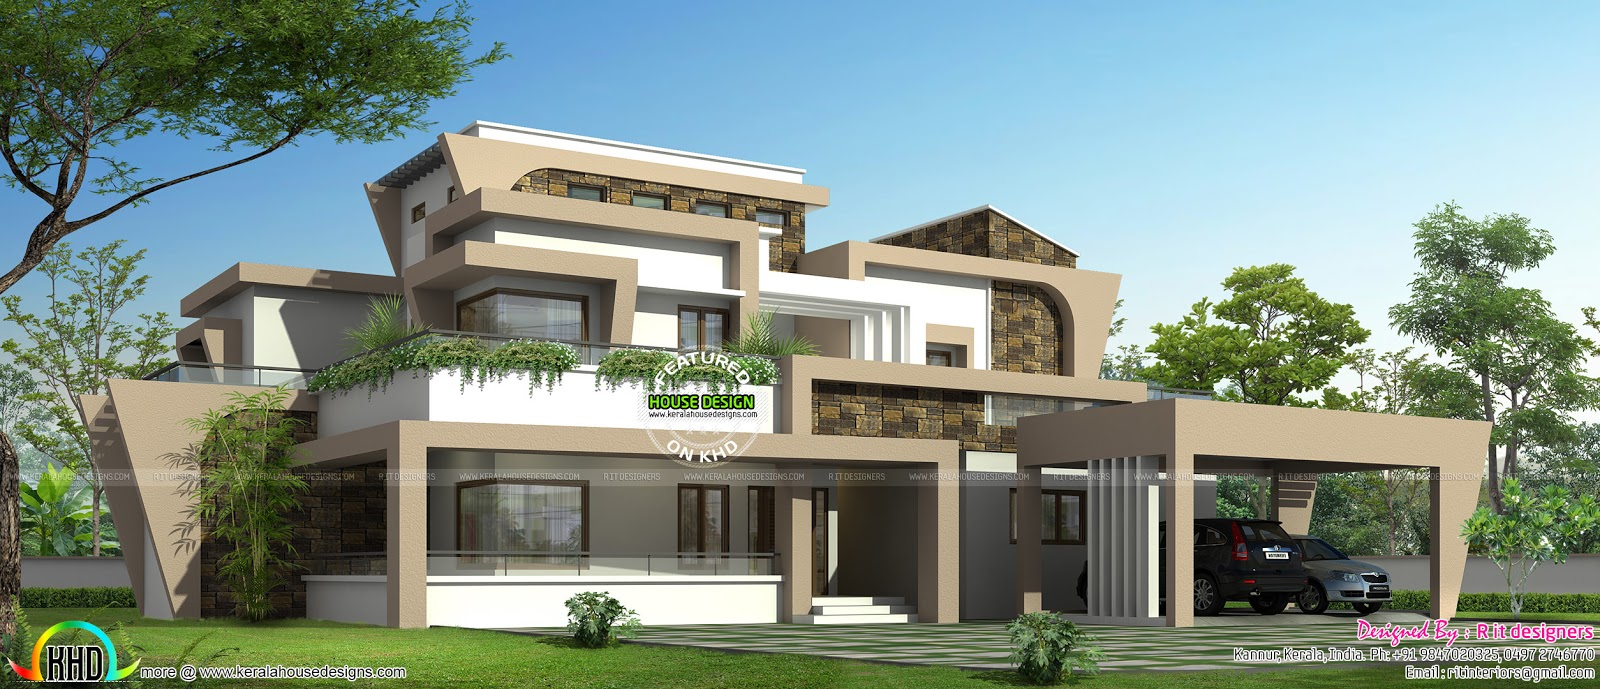 Unique modern home design in kerala kerala home design Unique house designs